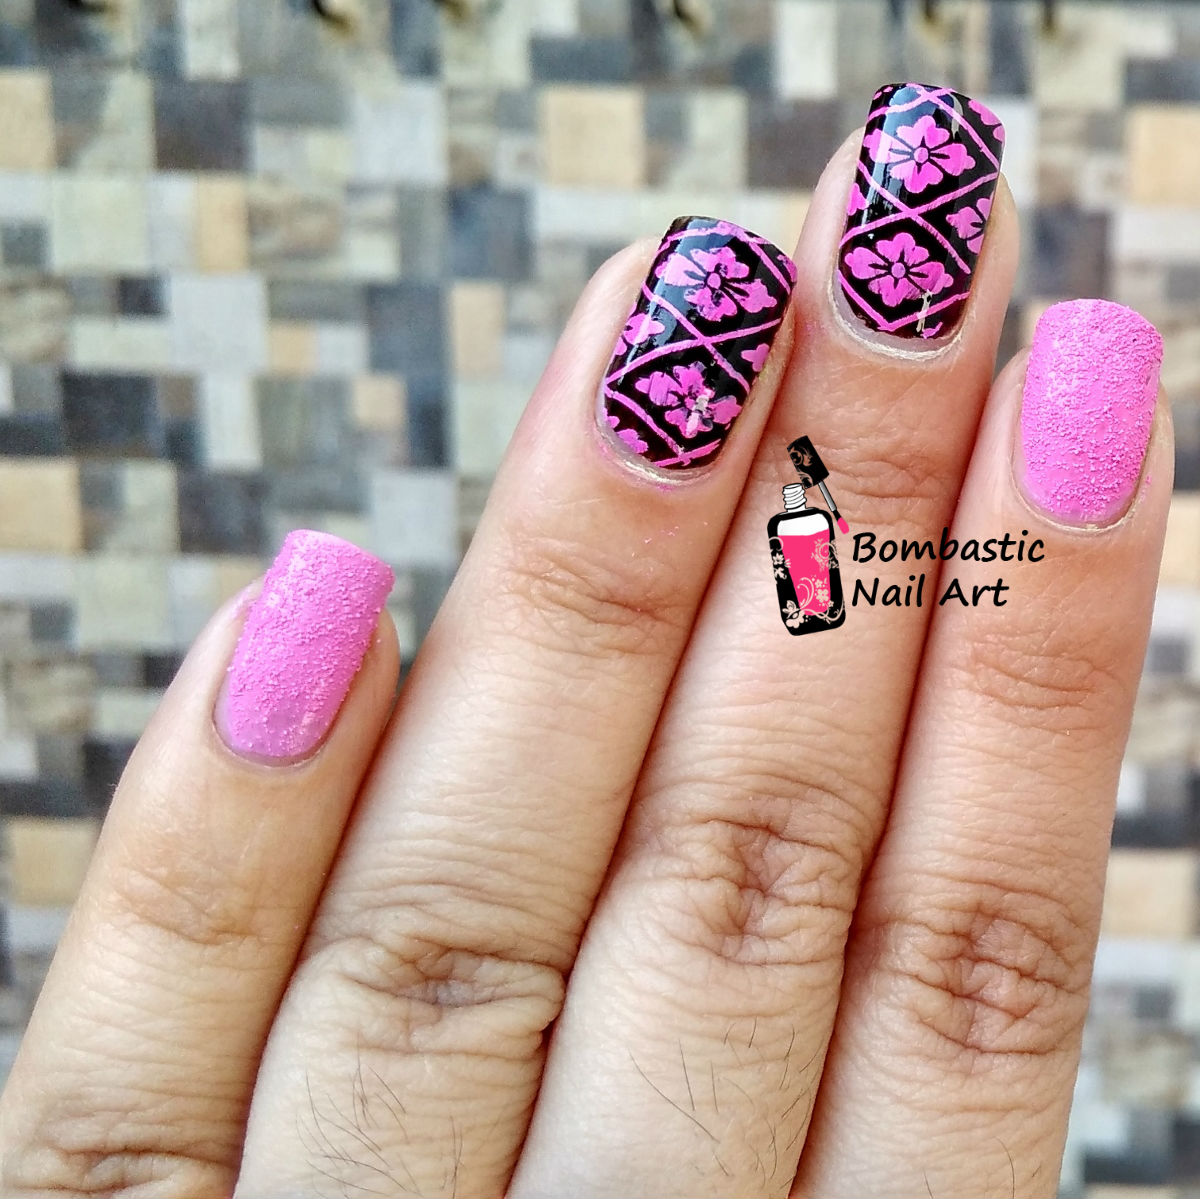 Mundo de unas mexican pink stamping nail polish review and mexican pink stamping nail polish swatch and review stamping nail art prinsesfo Image collections